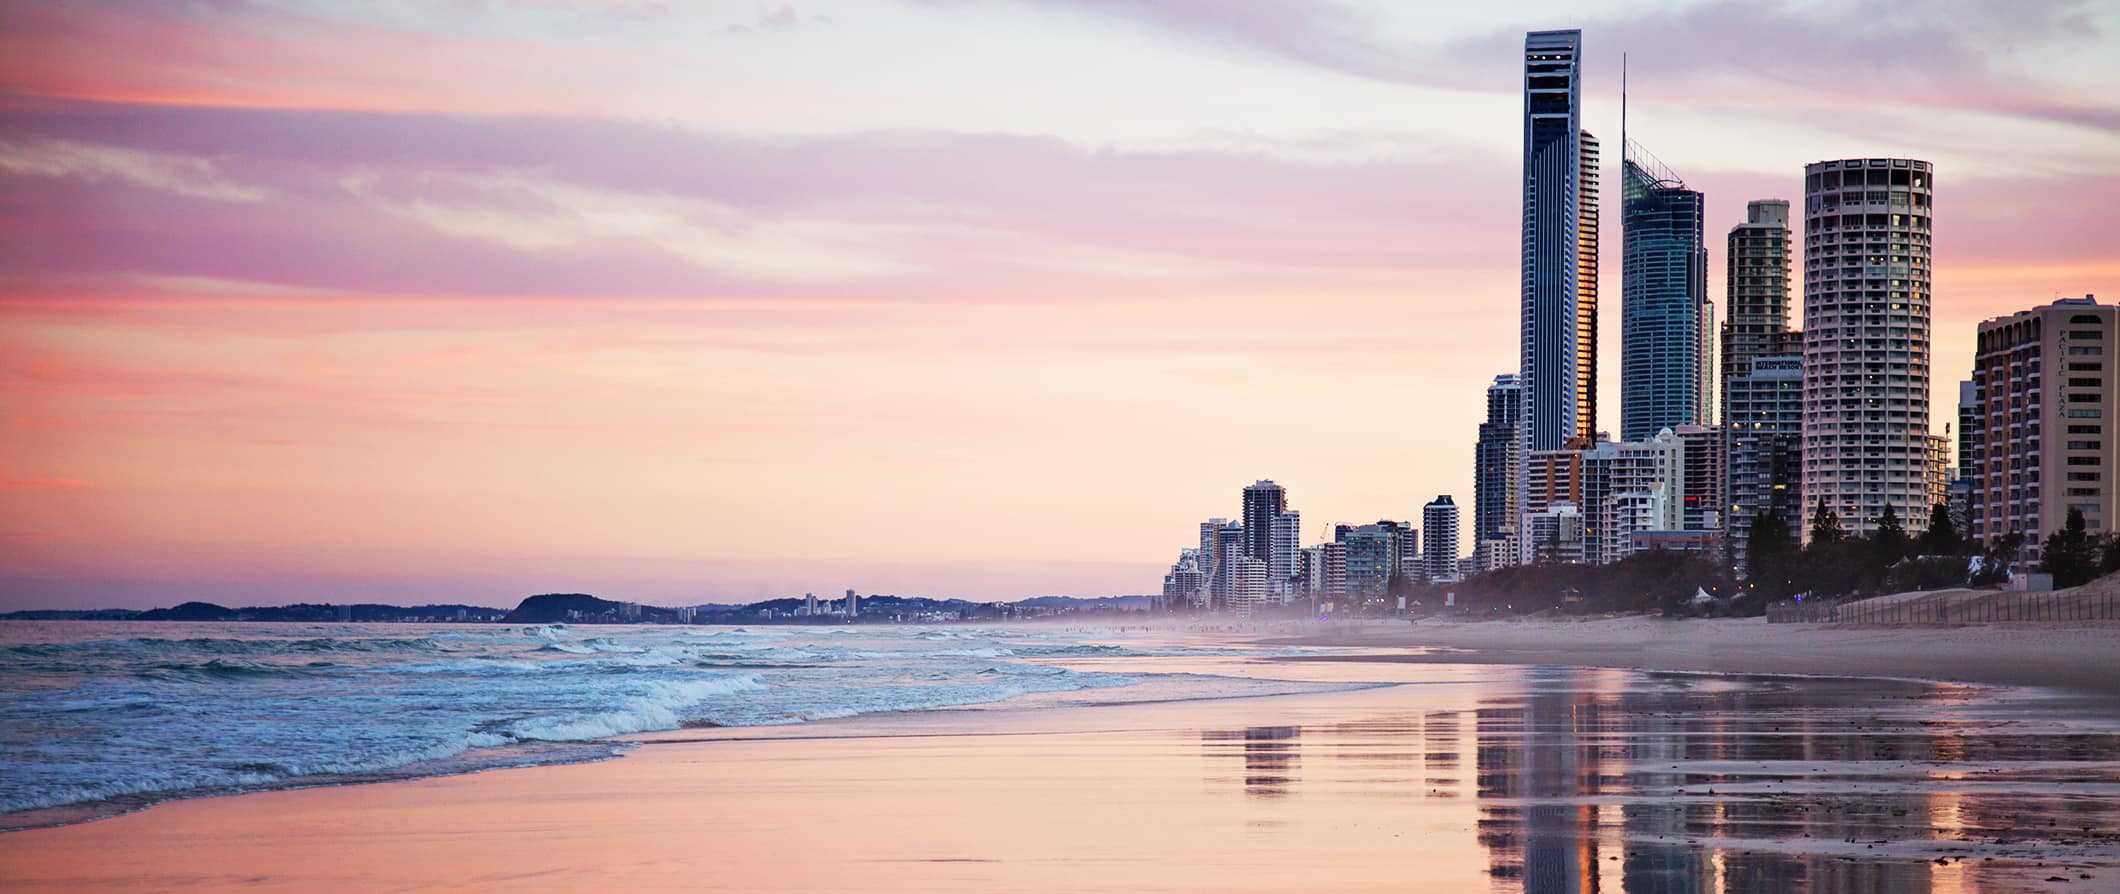 australia city and beach at sunset